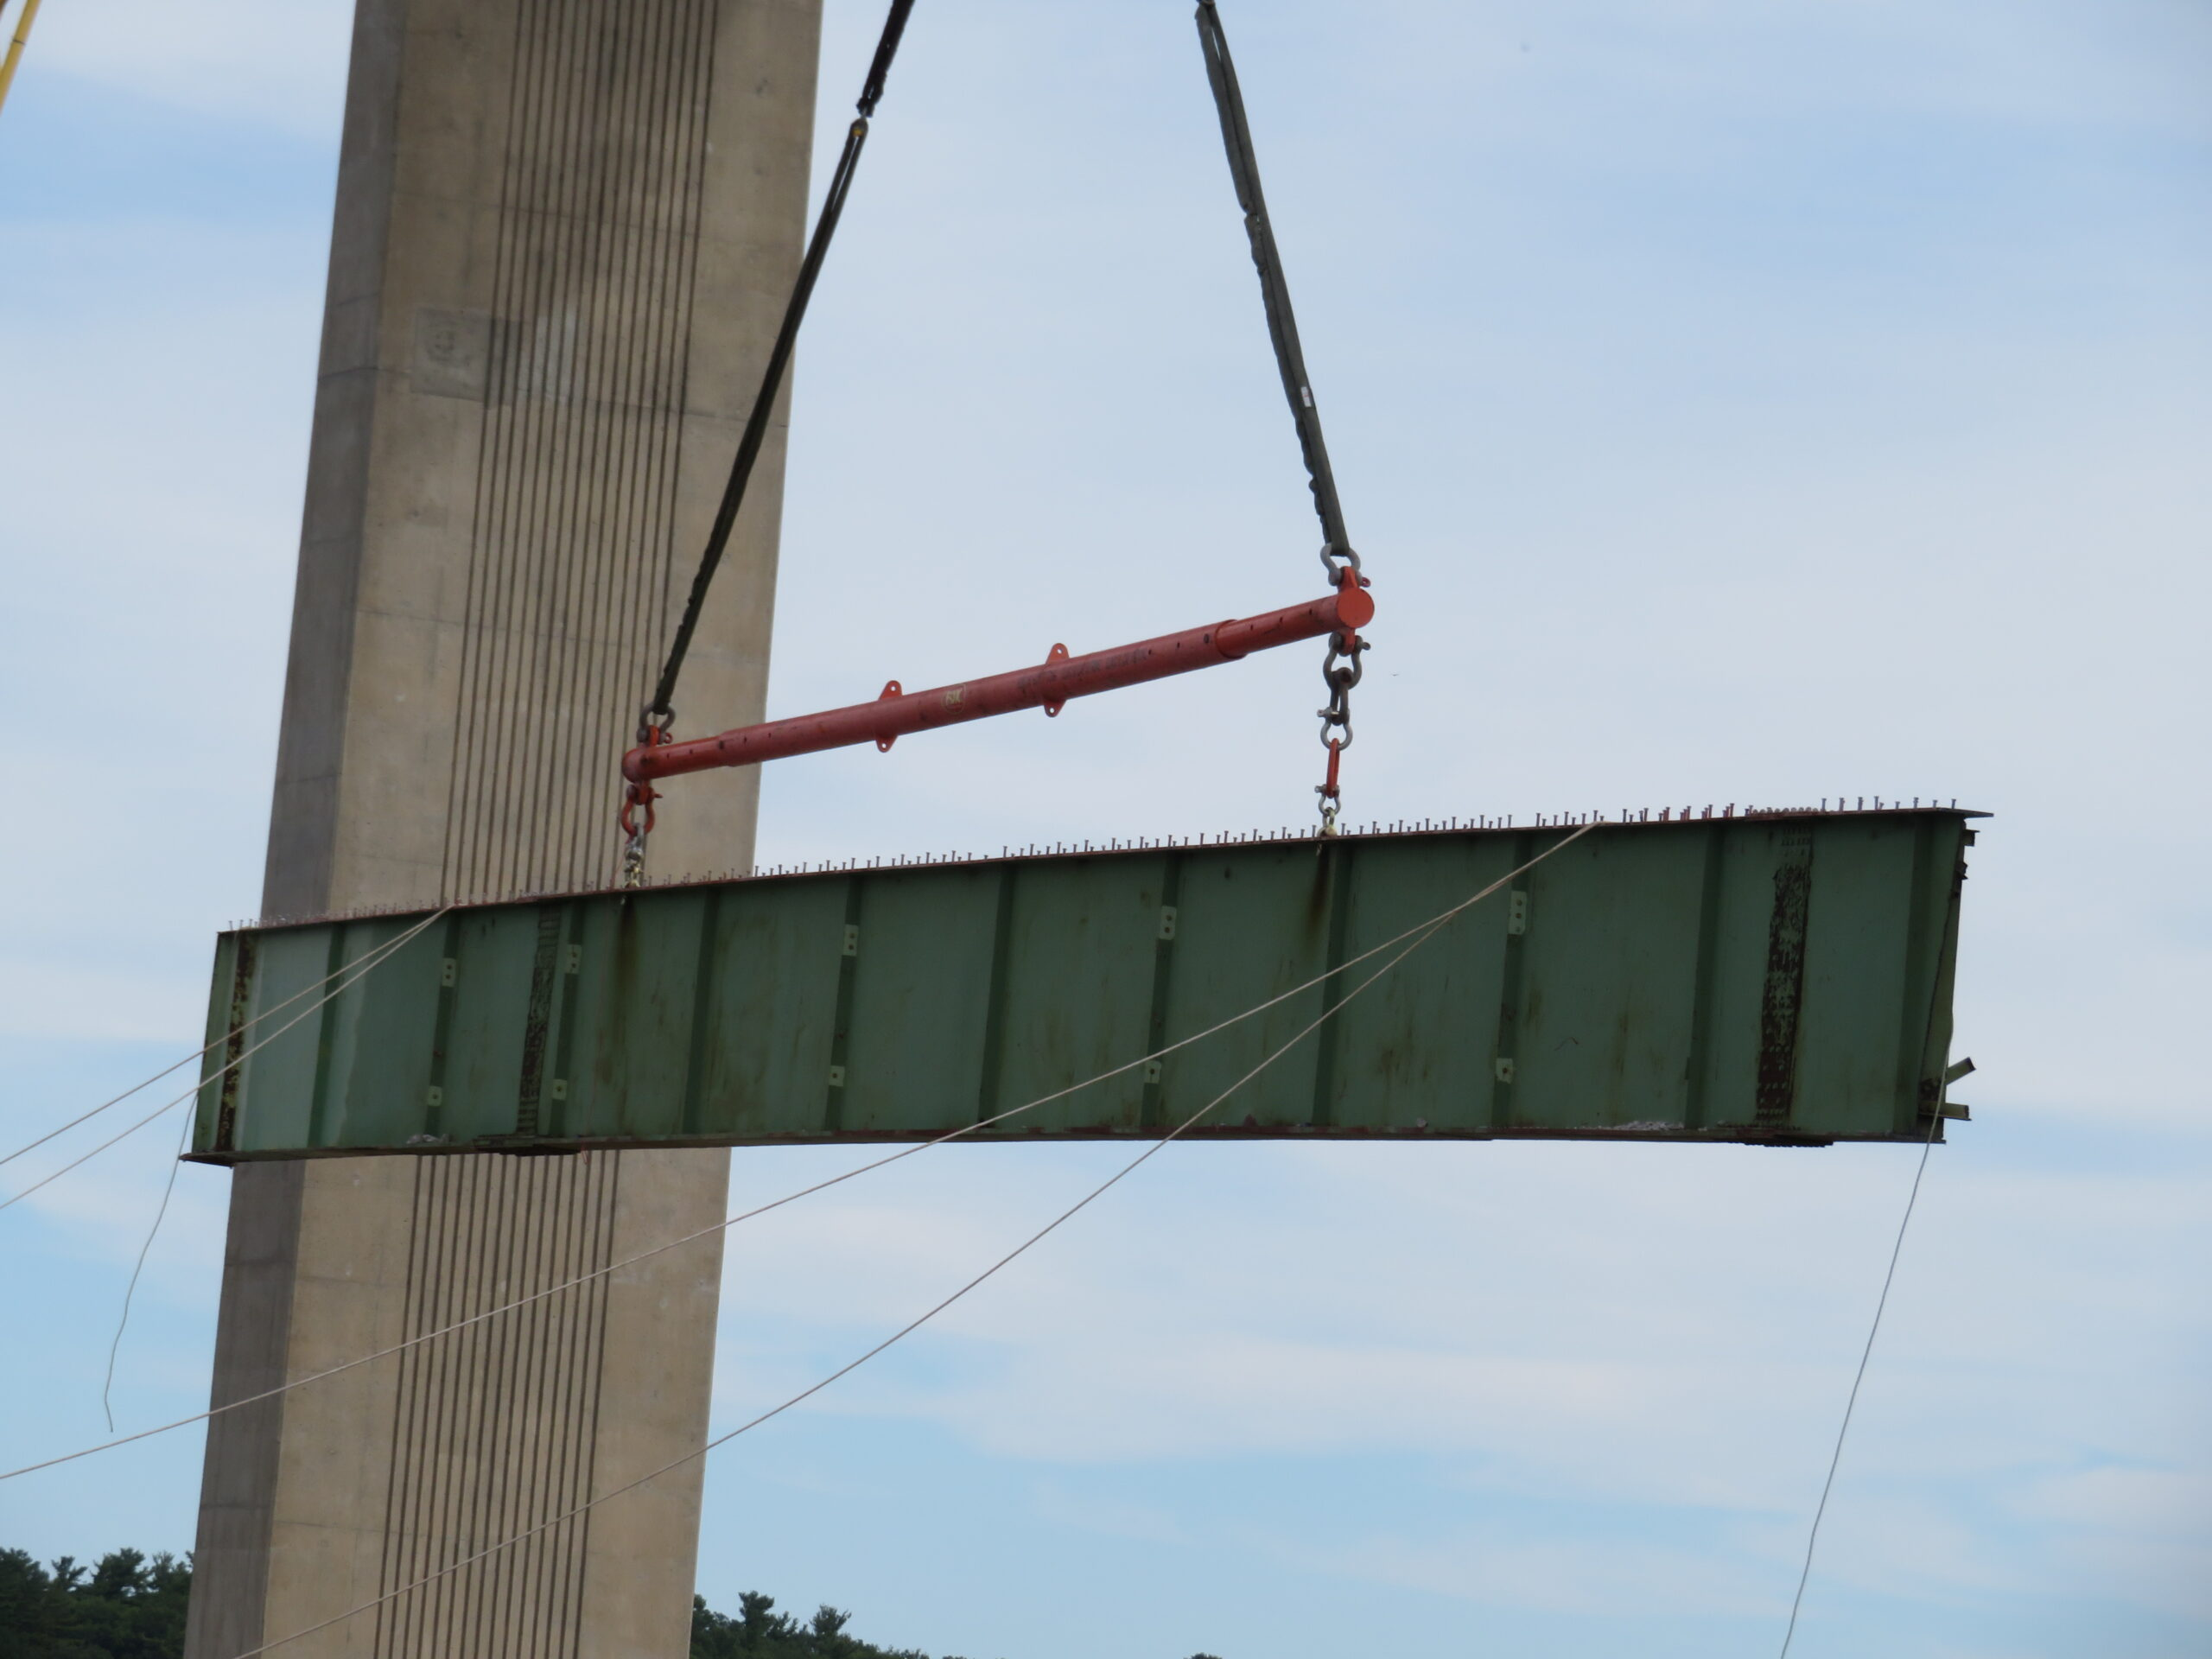 Close-up, girder section being lowered